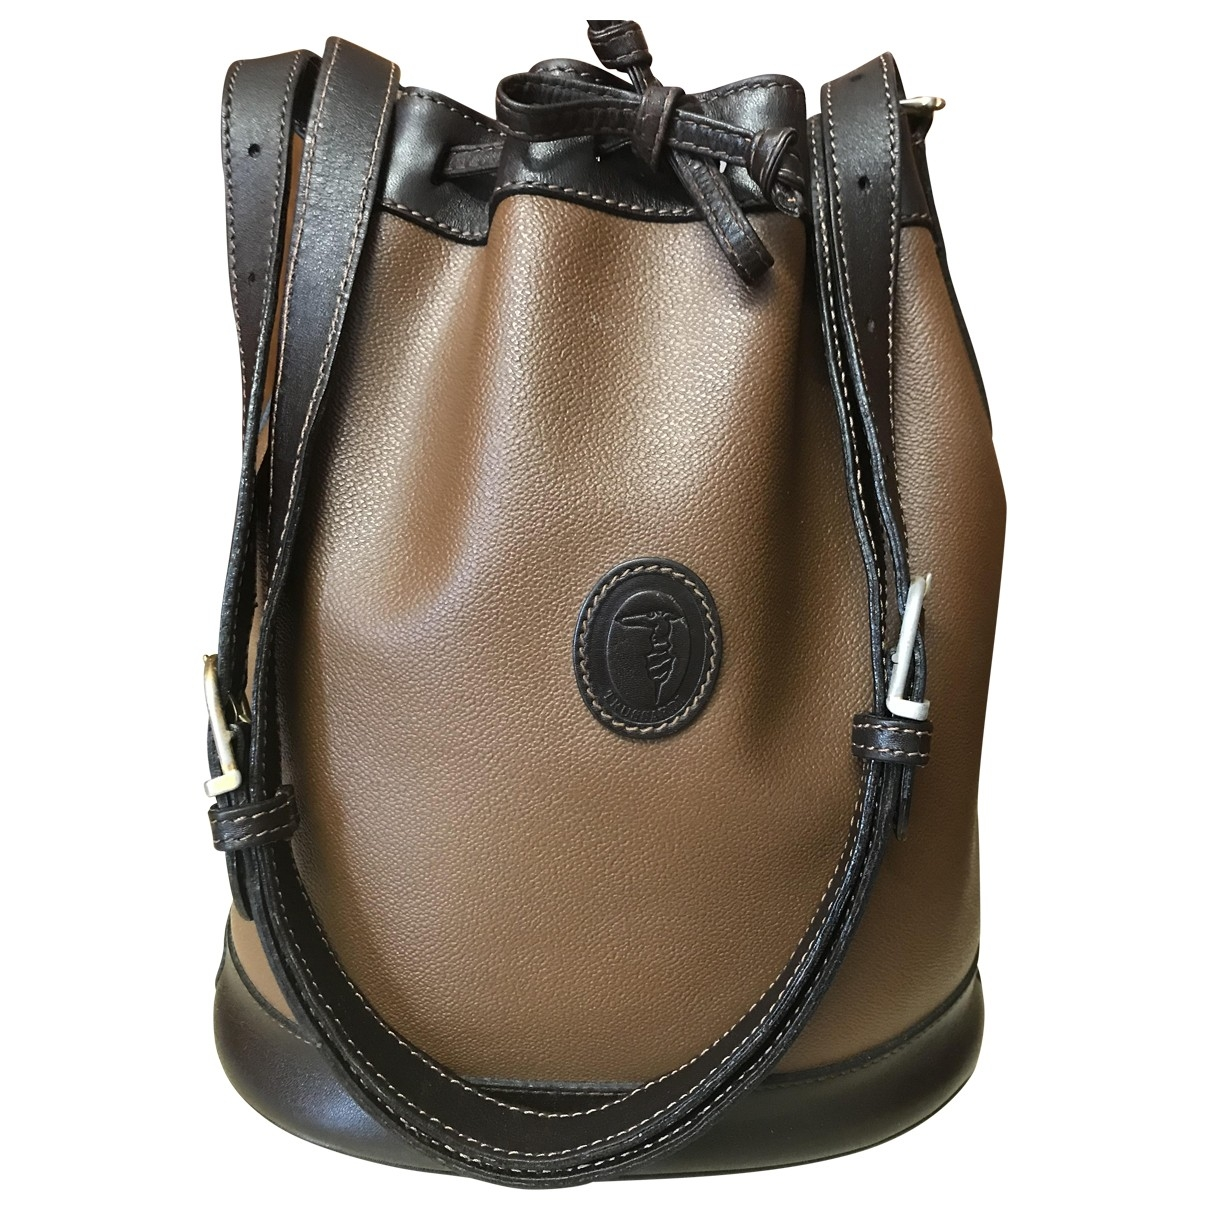 Trussardi \N Brown Cloth handbag for Women \N